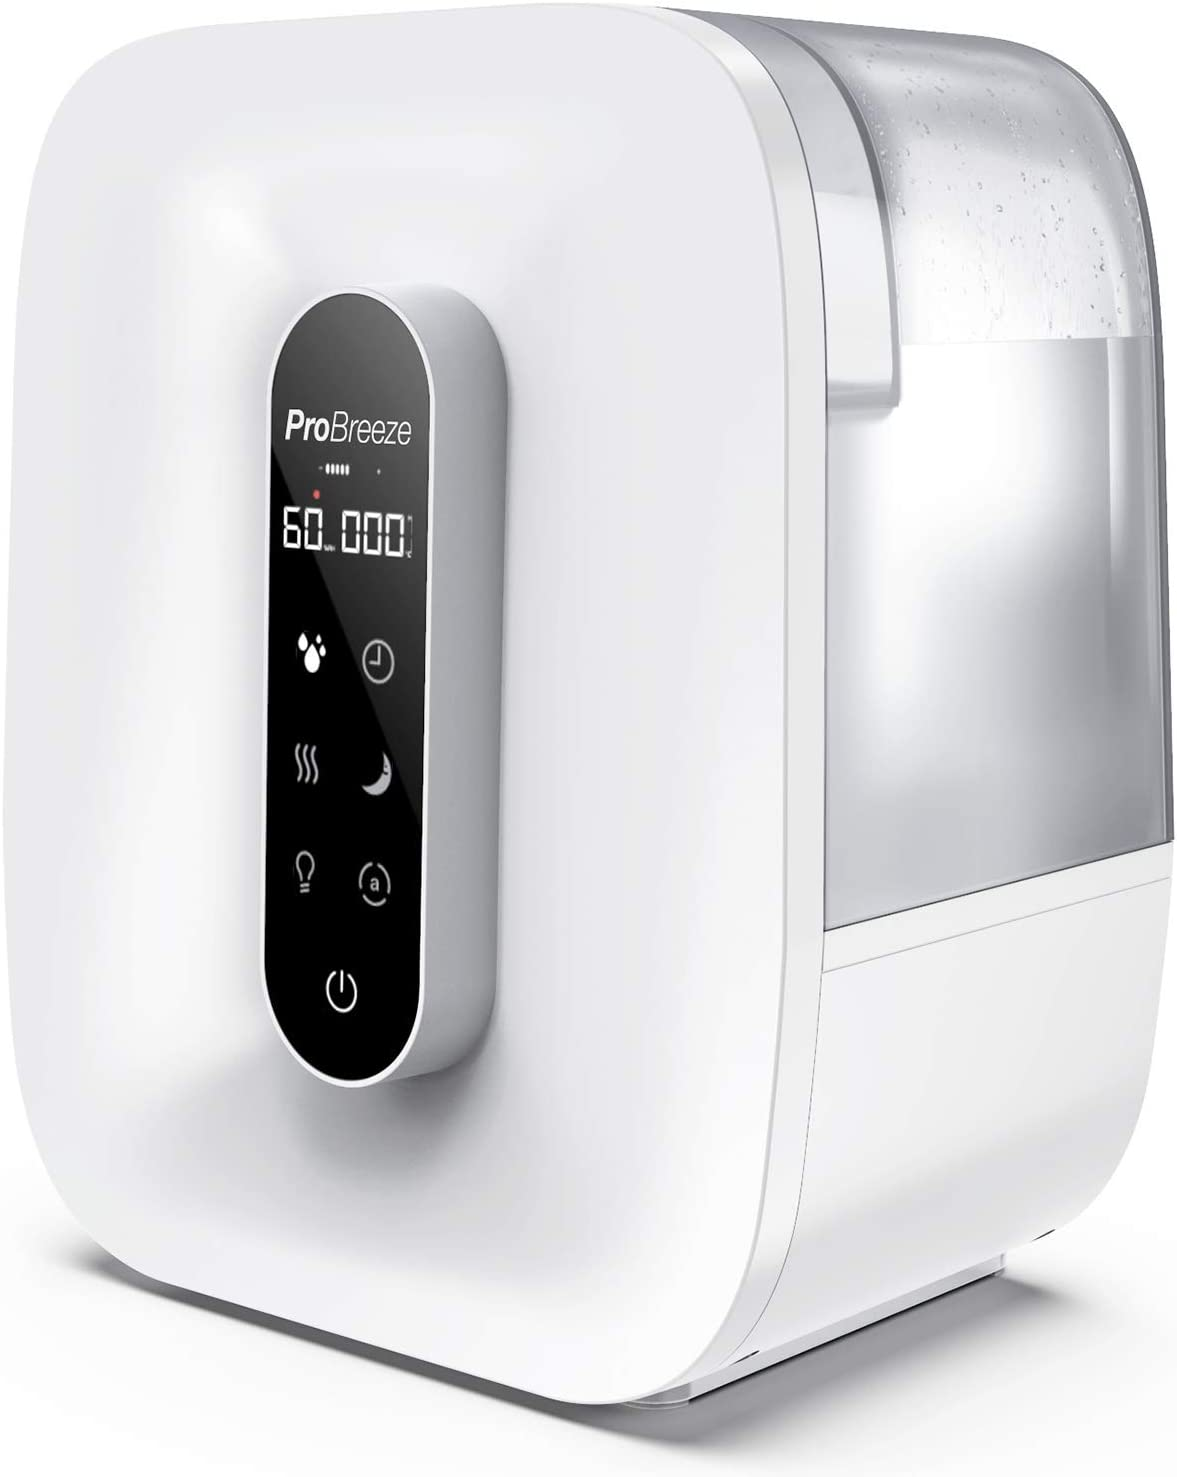 Pro Breeze® 5.6 Litre Ultrasonic Humidifier & CV Fogging